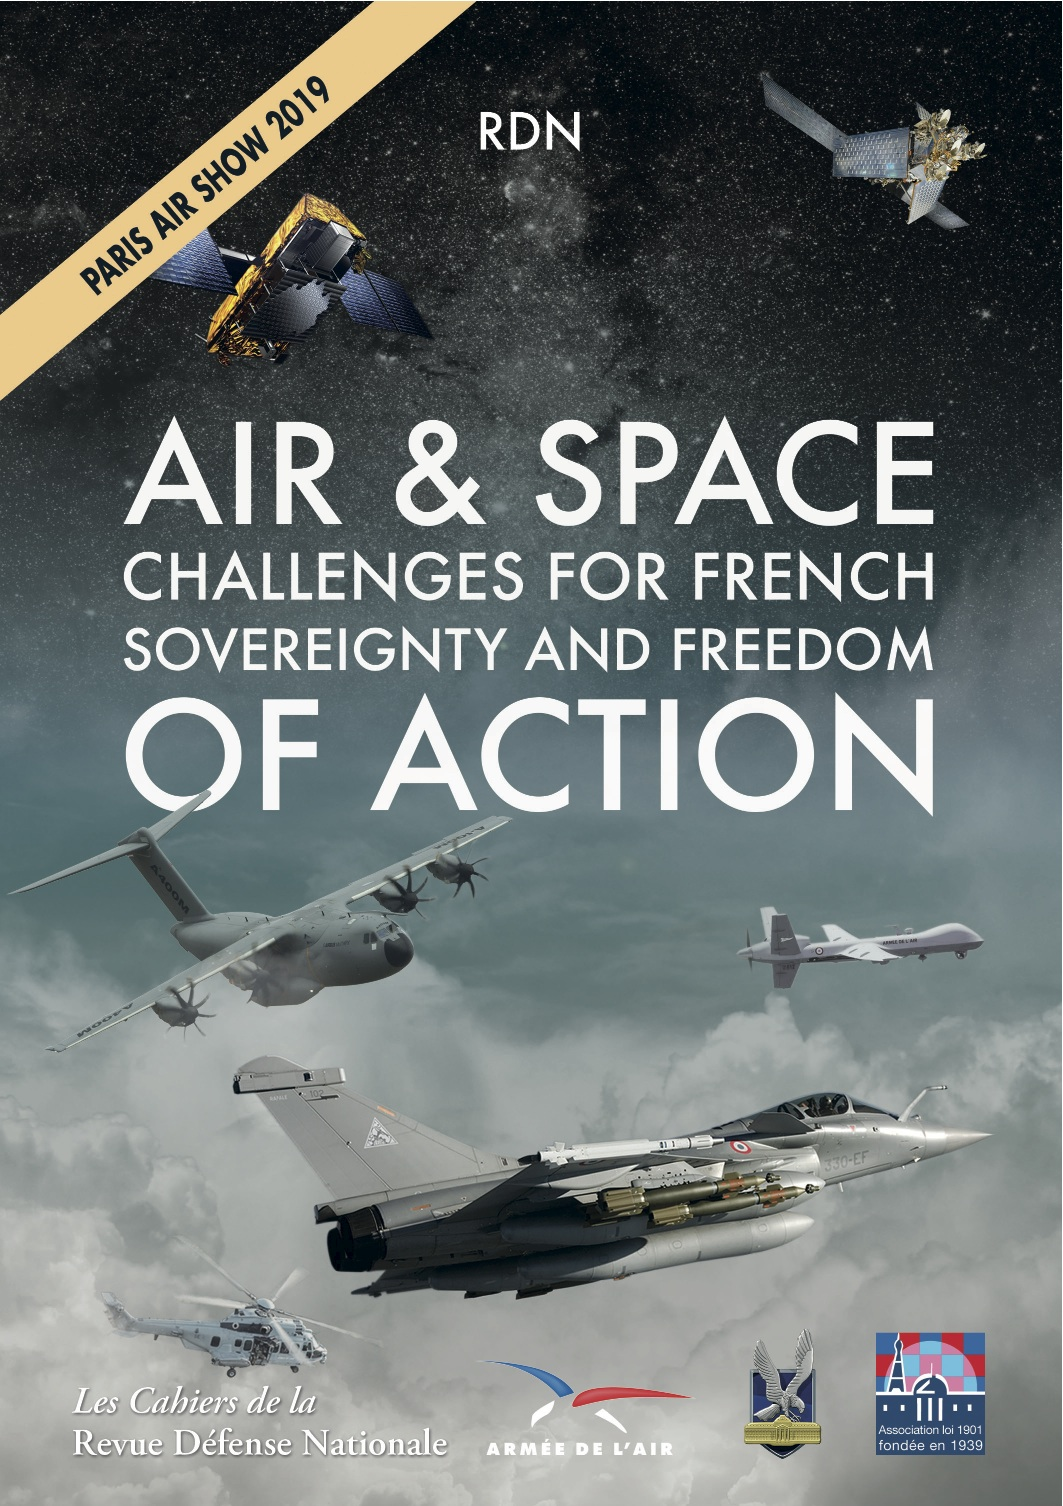 International Paris Air Show Le Bourget 2019—Air & Space Challenges for French Sovereignty and Freedom of Action